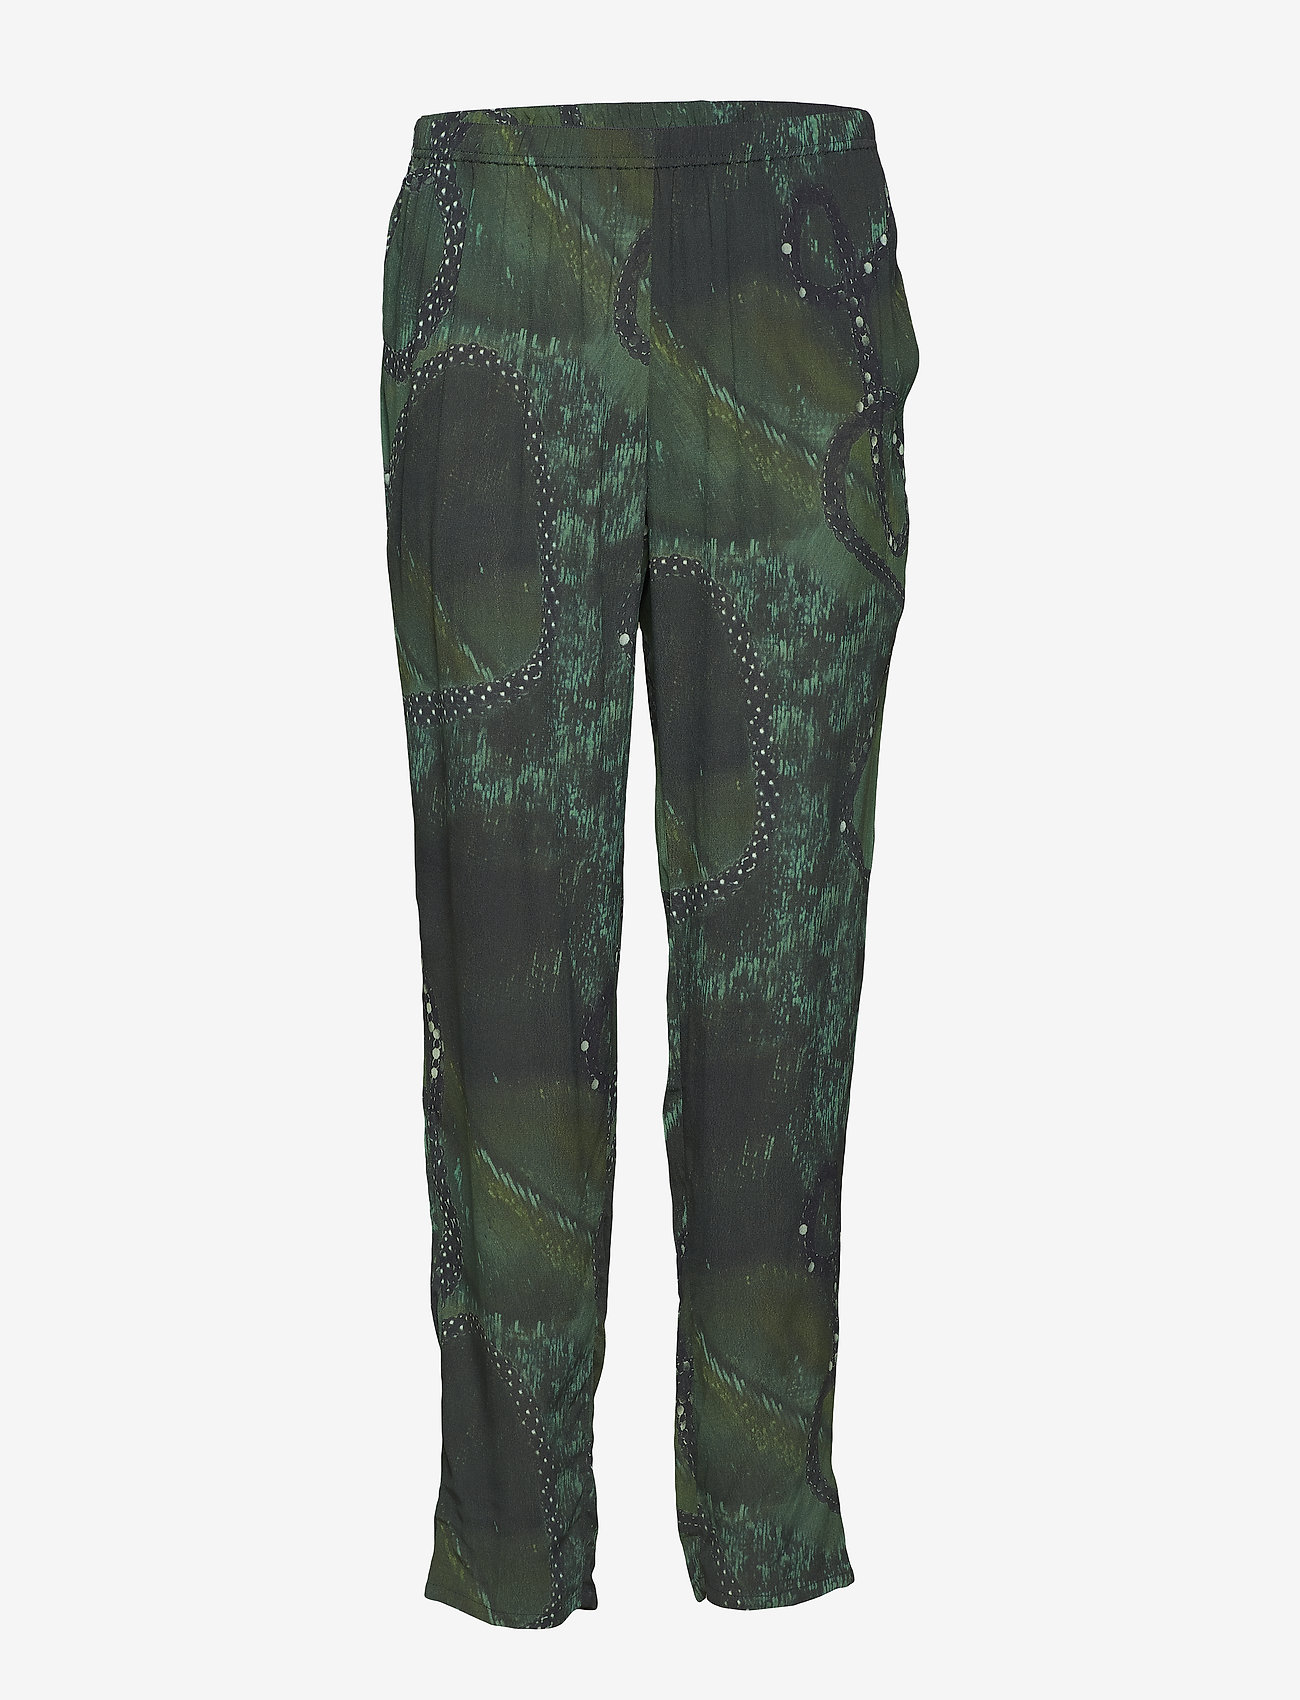 Diana Orving - Trousers - straight leg trousers - green